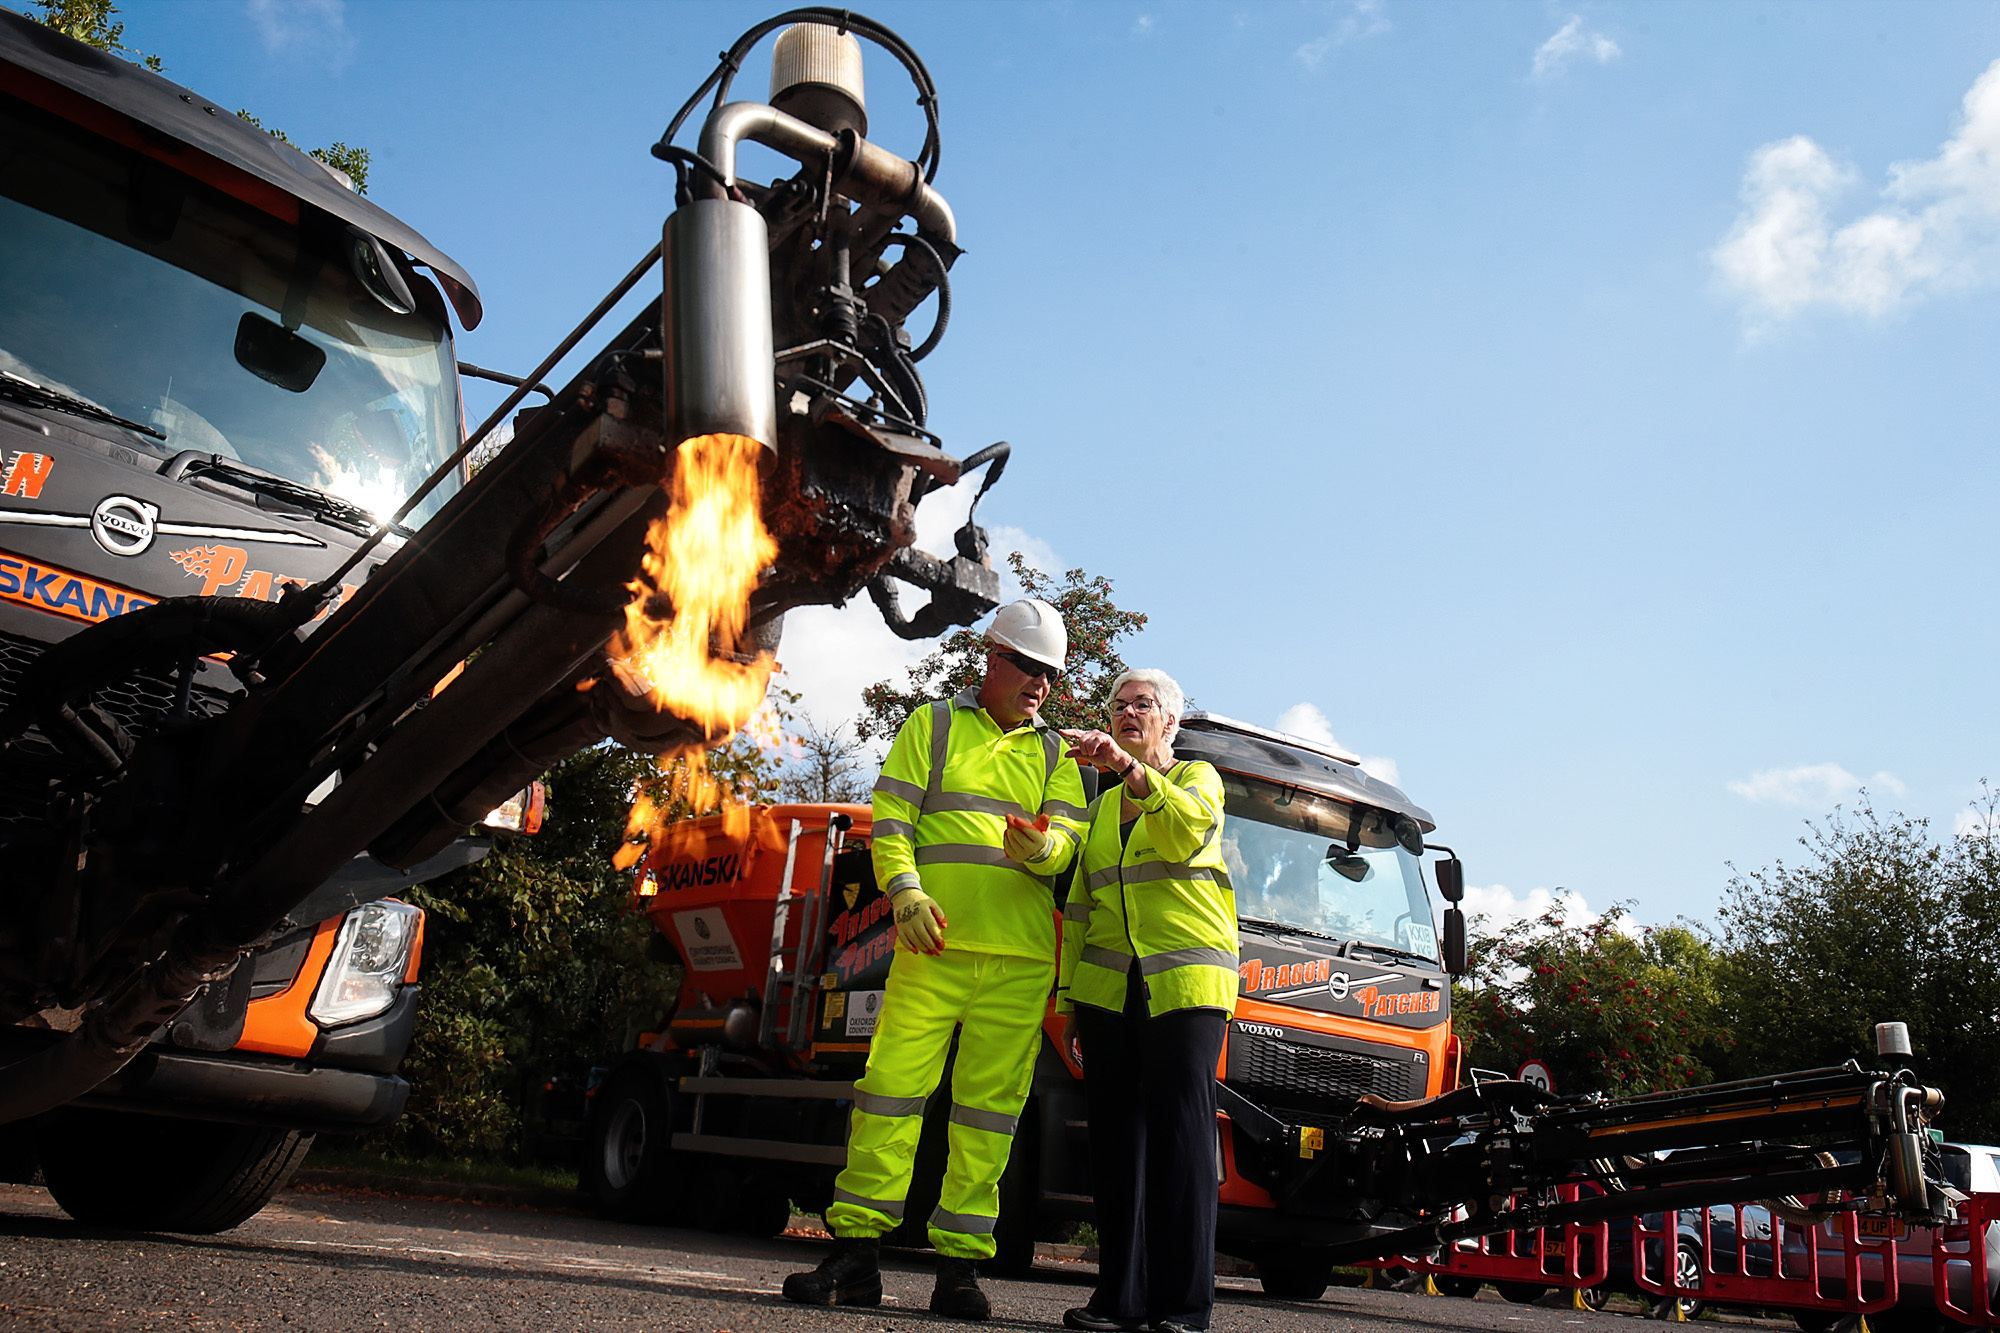 Dragon Patcher Tim Harris explains the mysteries of his new machine to Yvonne Constance, cabinet member with responsibility for the environment, as the County Council unveiled it's latest Dragon Patcher which will be used to repair potholes in the cou